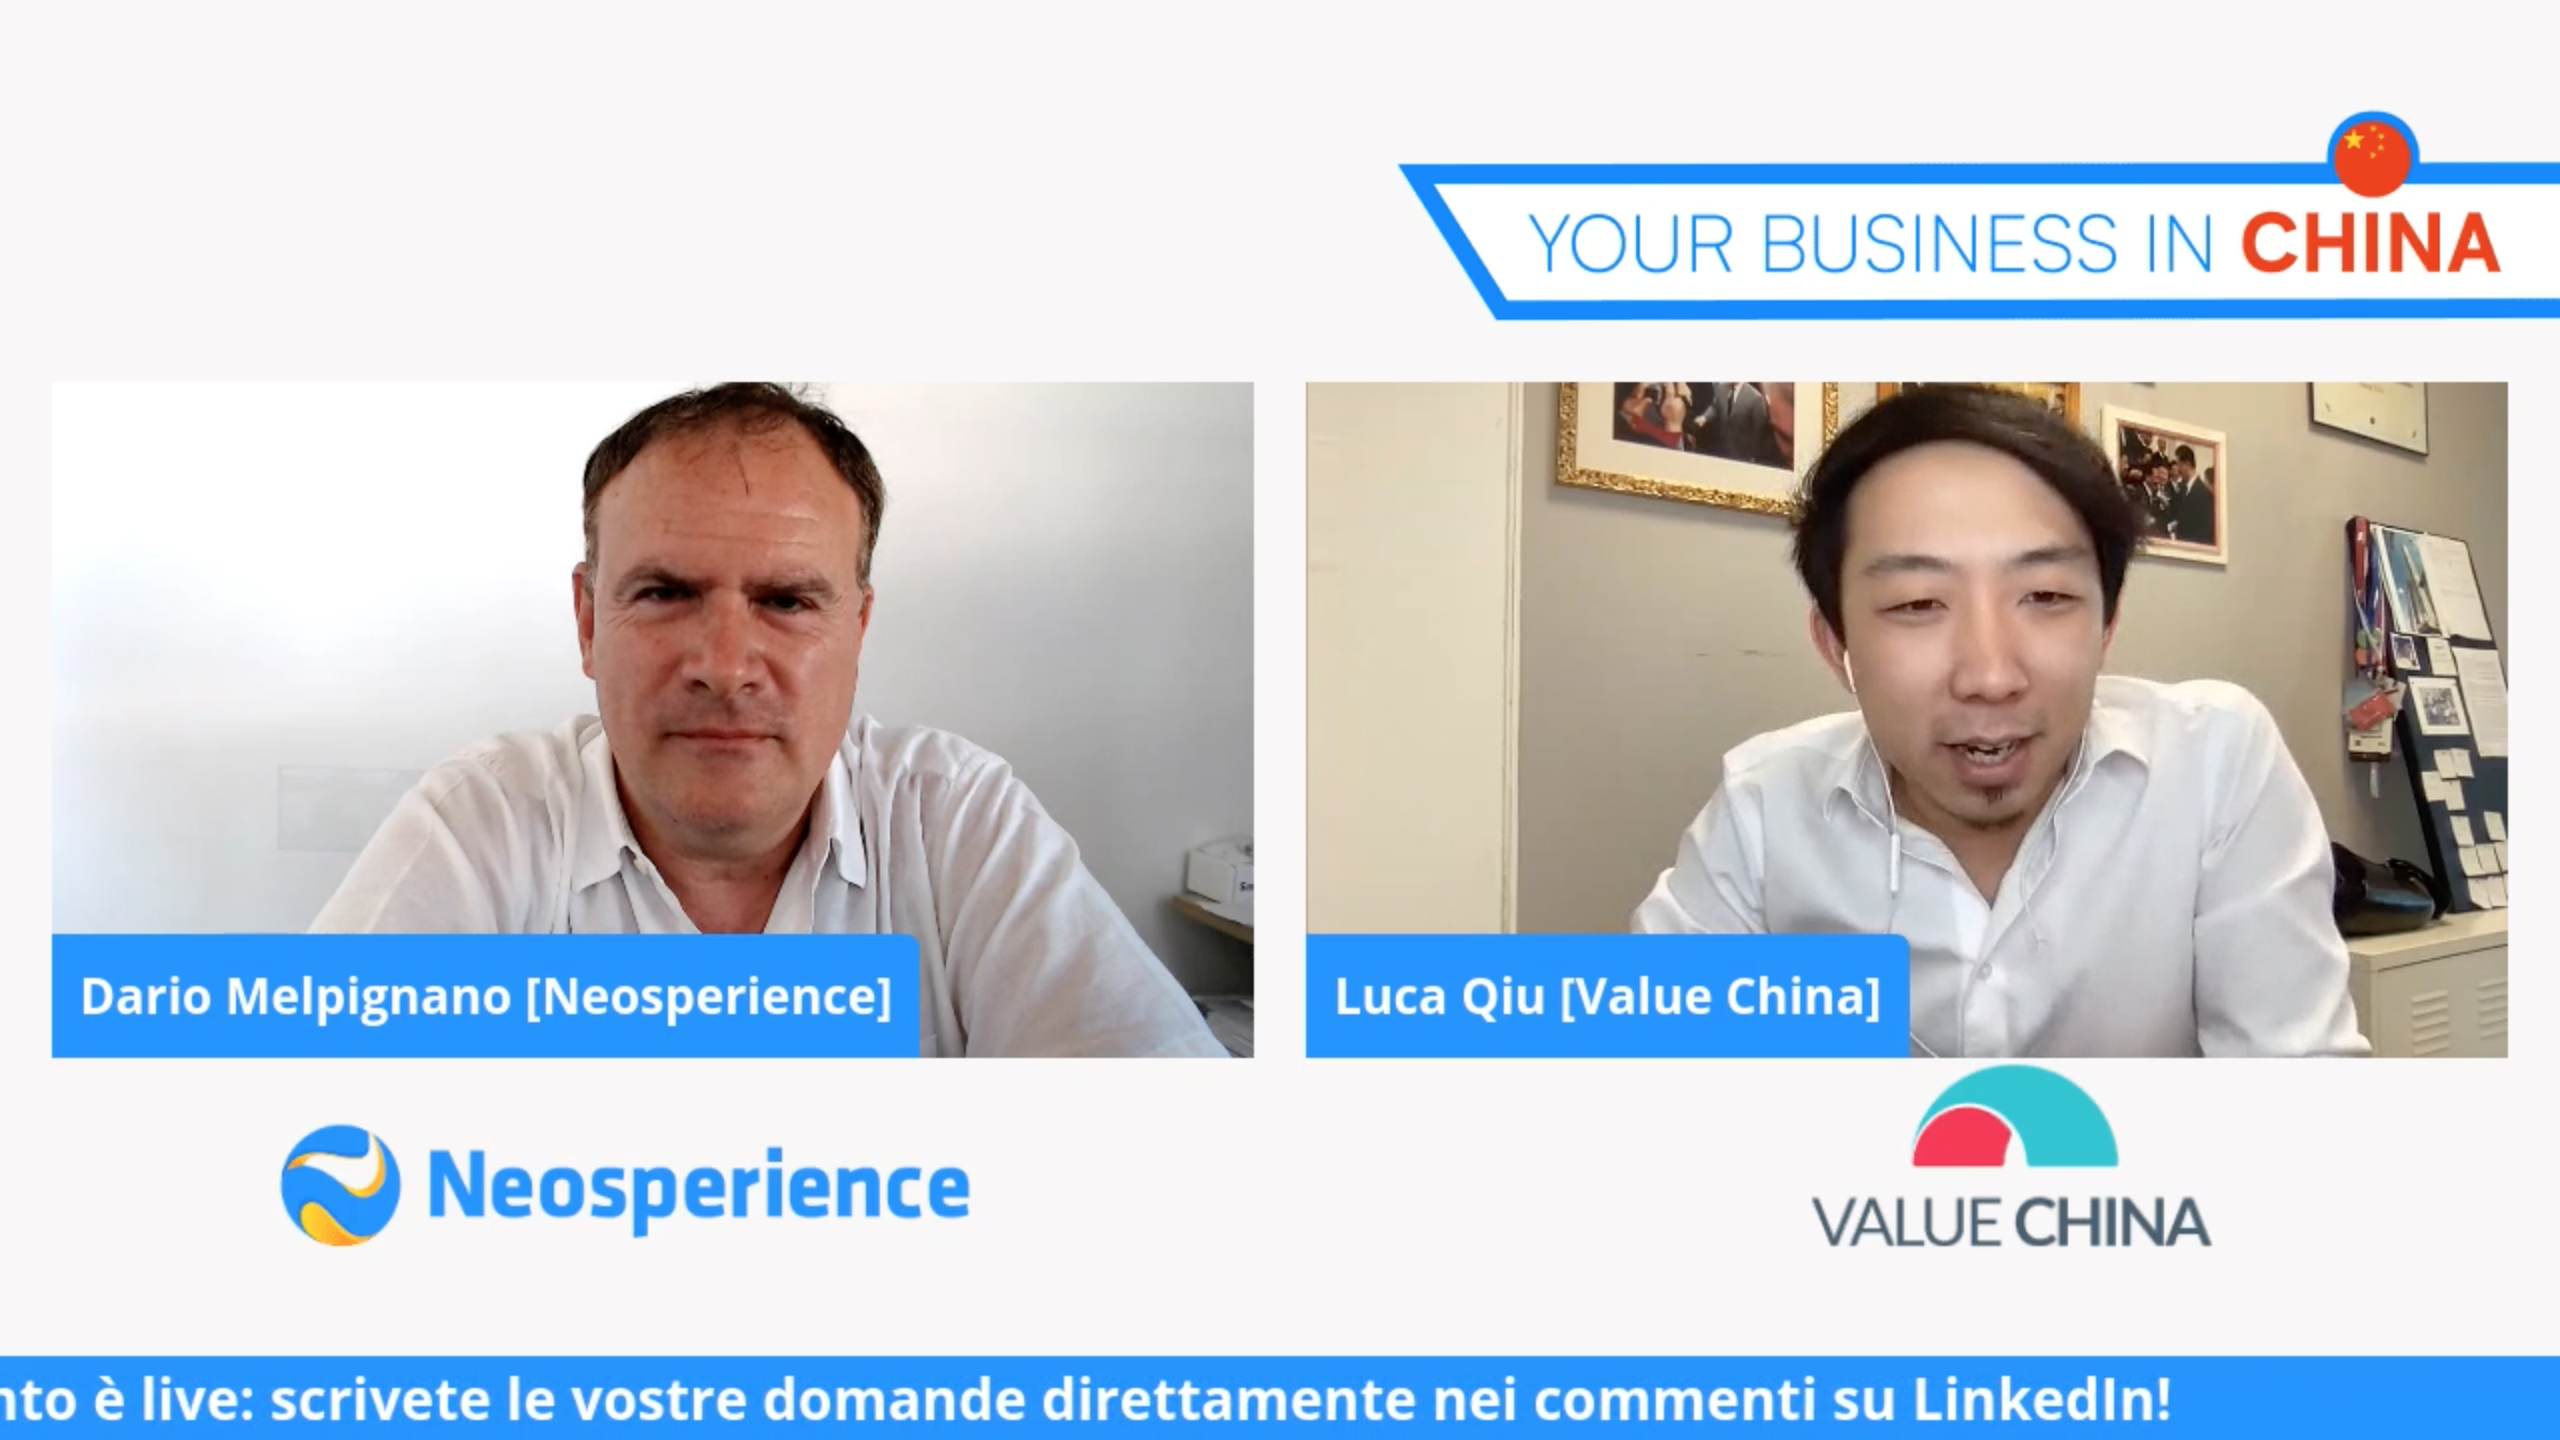 Ep 12 Your business in China